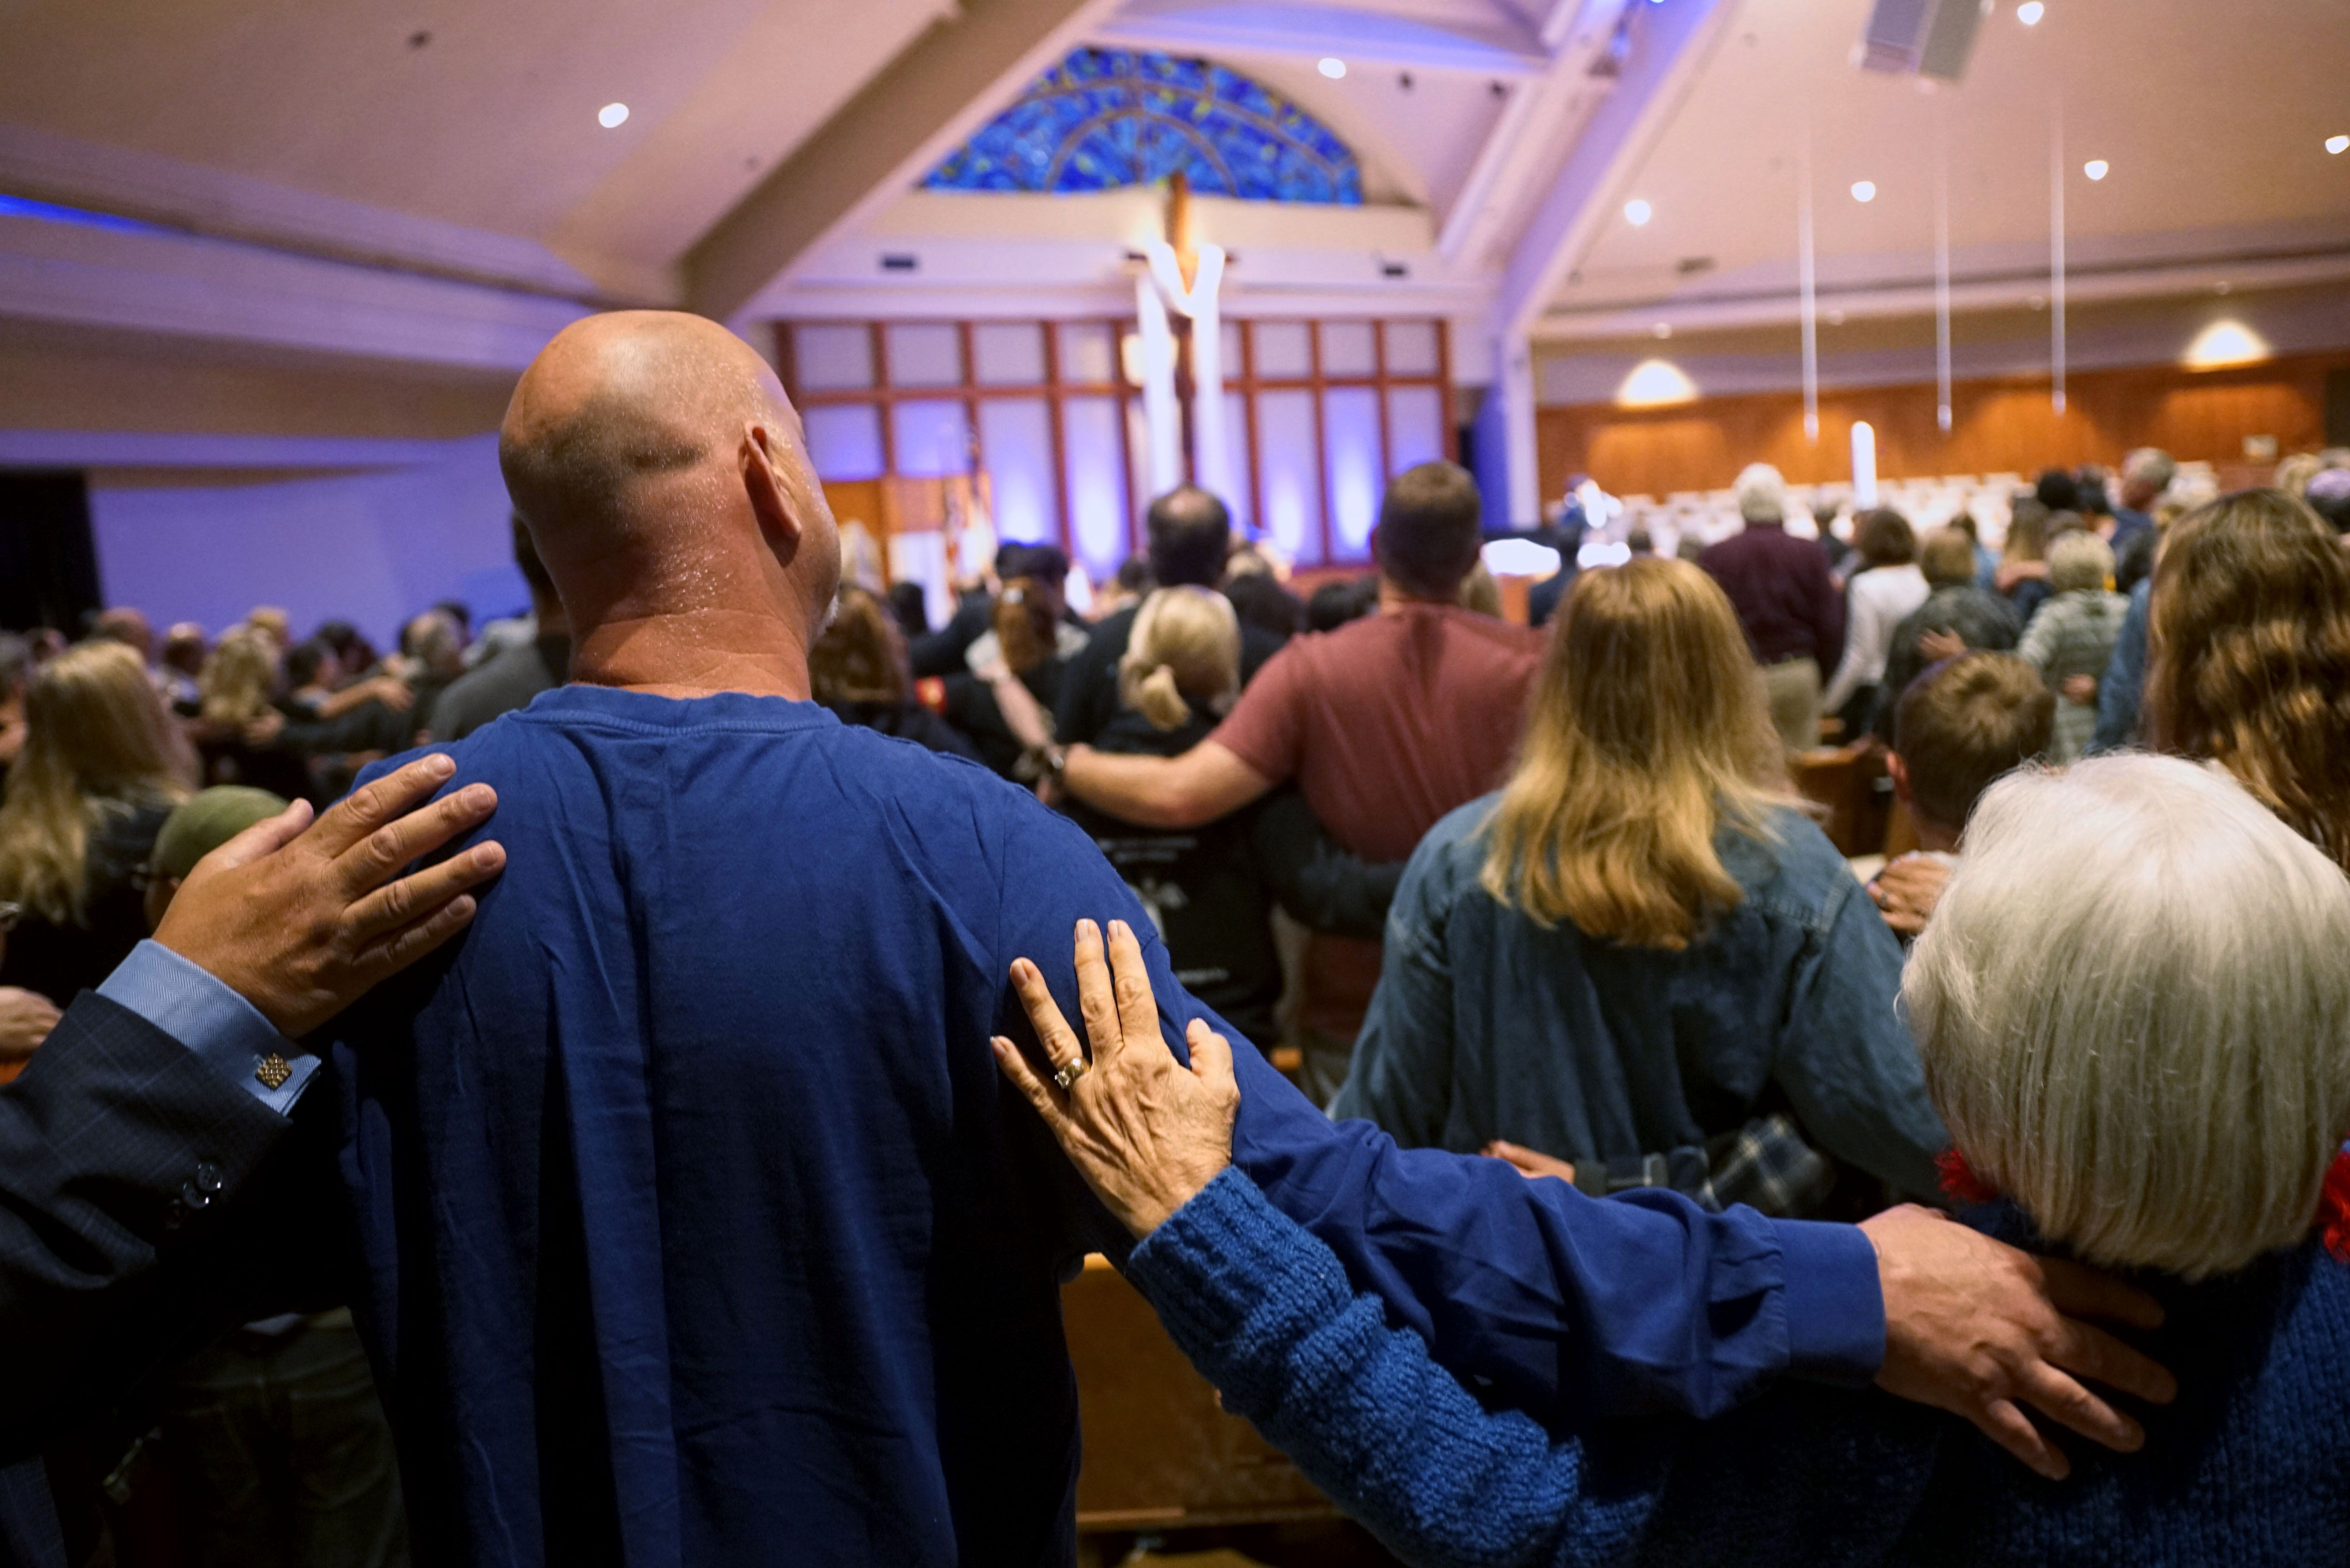 Mourners participate in a vigil for the victims of the Chabad of Poway Synagogue shooting at the Rancho Bernardo Community Presbyterian Church on April 27, 2019 in Poway, California. - A teenage gunman who wrote a hate-filled manifesto opened fire at a synagogue in California on April 27, killing one person and injuring three others including the rabbi as worshippers marked the final day of Passover, authorities said. (Photo by SANDY HUFFAKER / AFP) (Photo credit should read SANDY HUFFAKER/AFP/Getty Images)